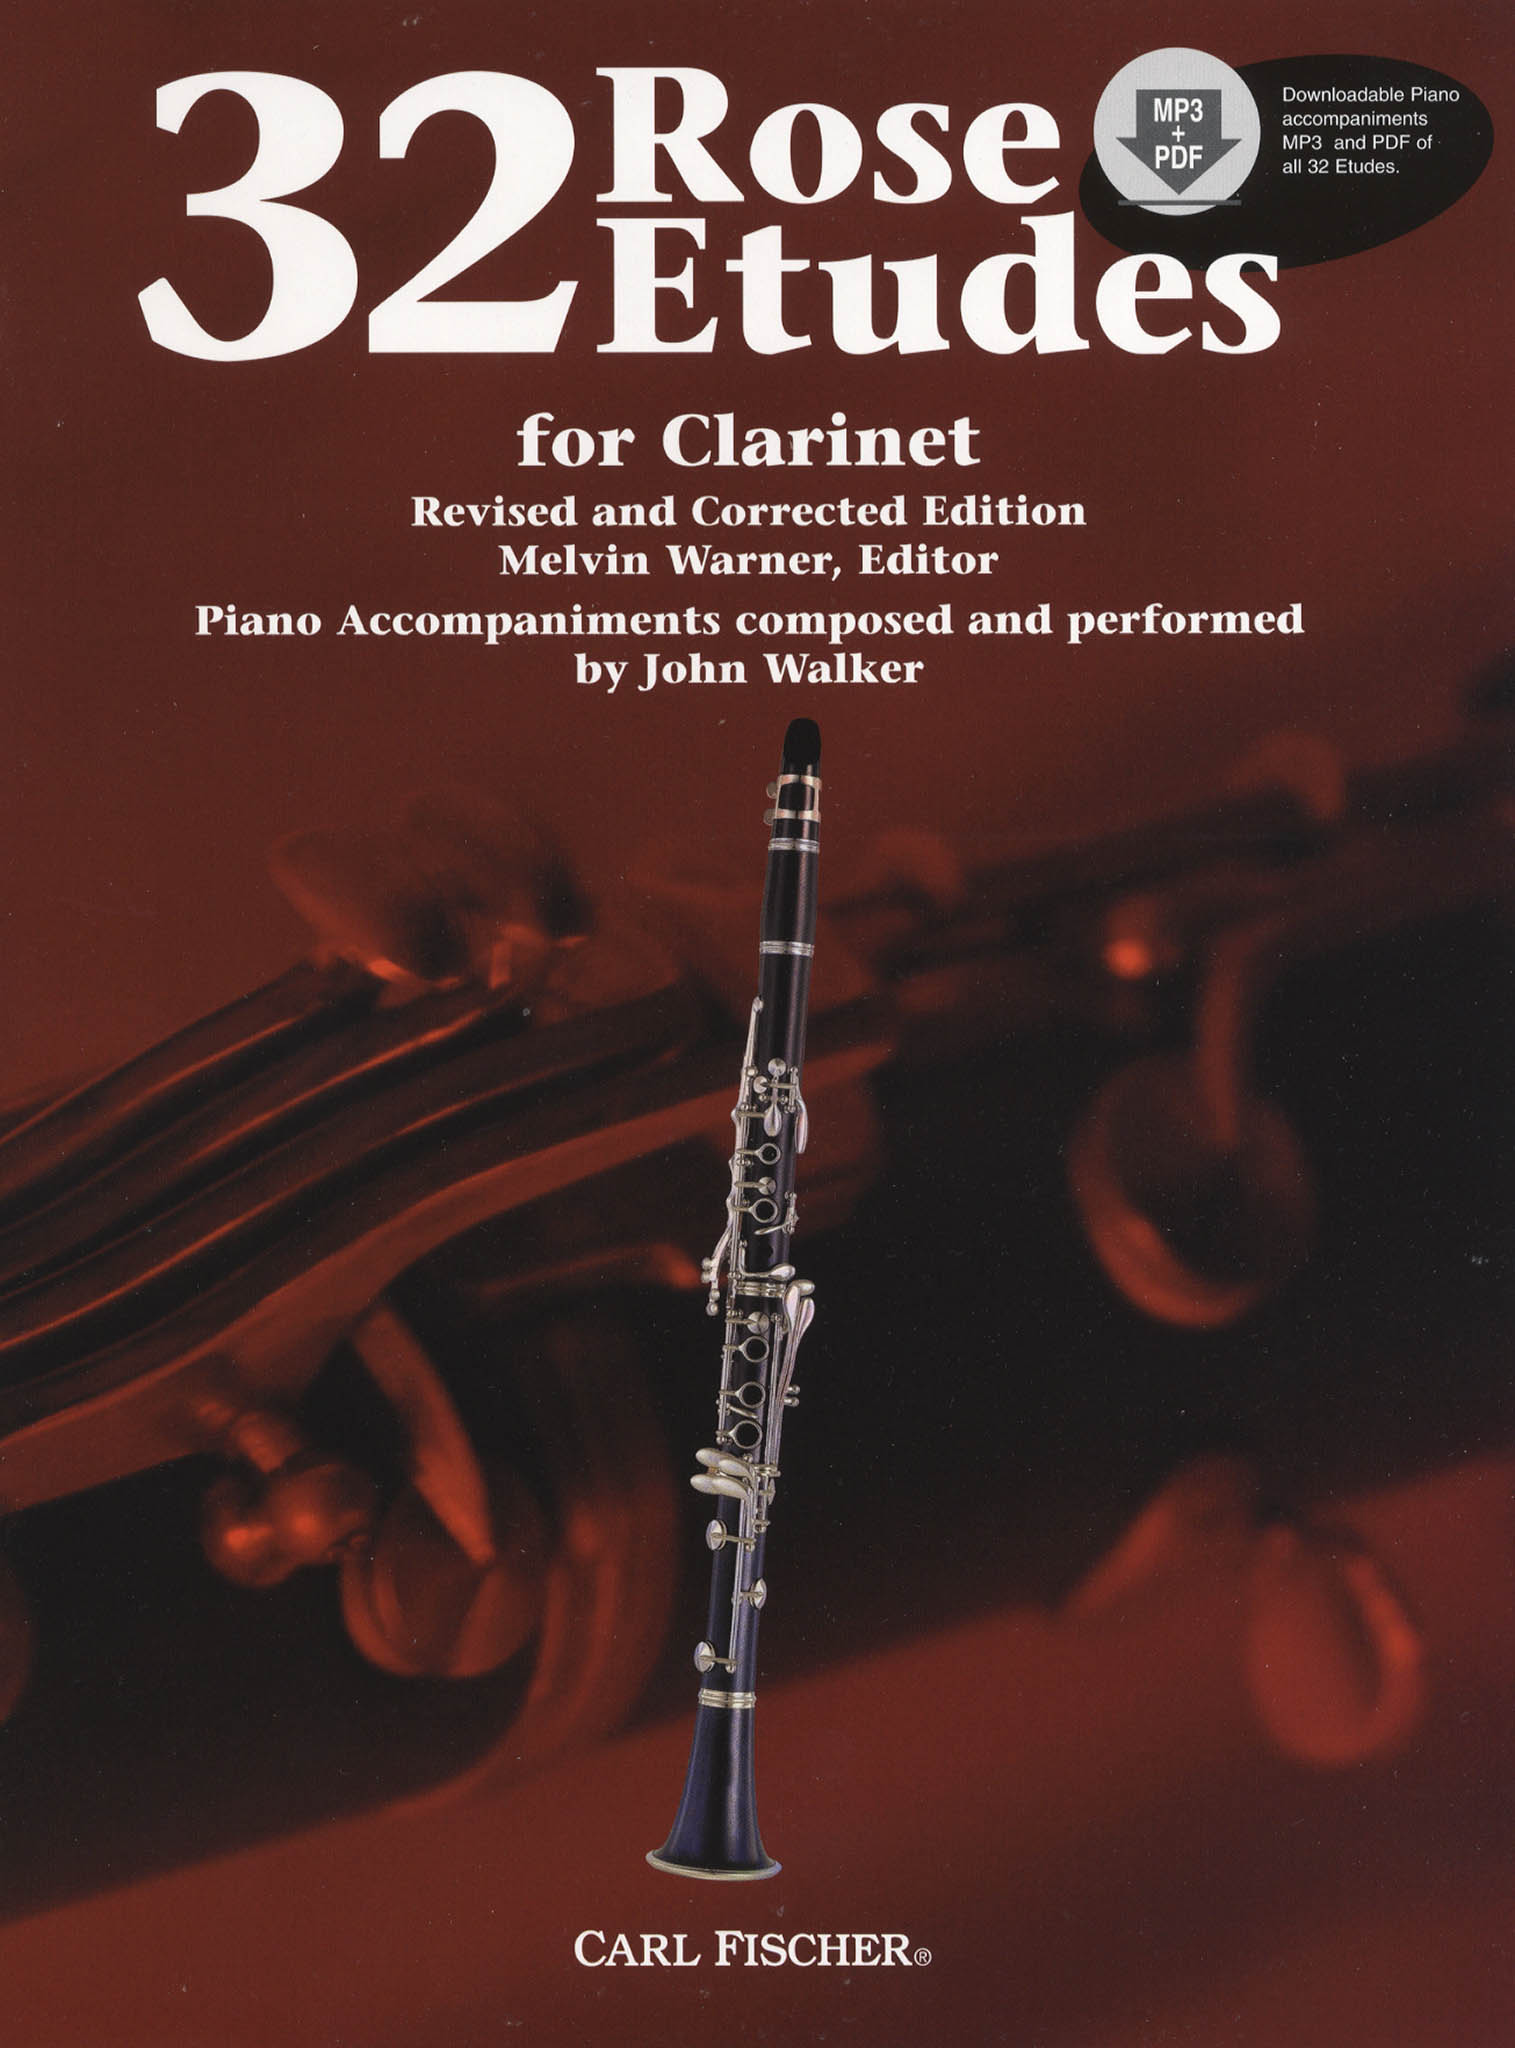 32 Etudes for Clarinet Cover